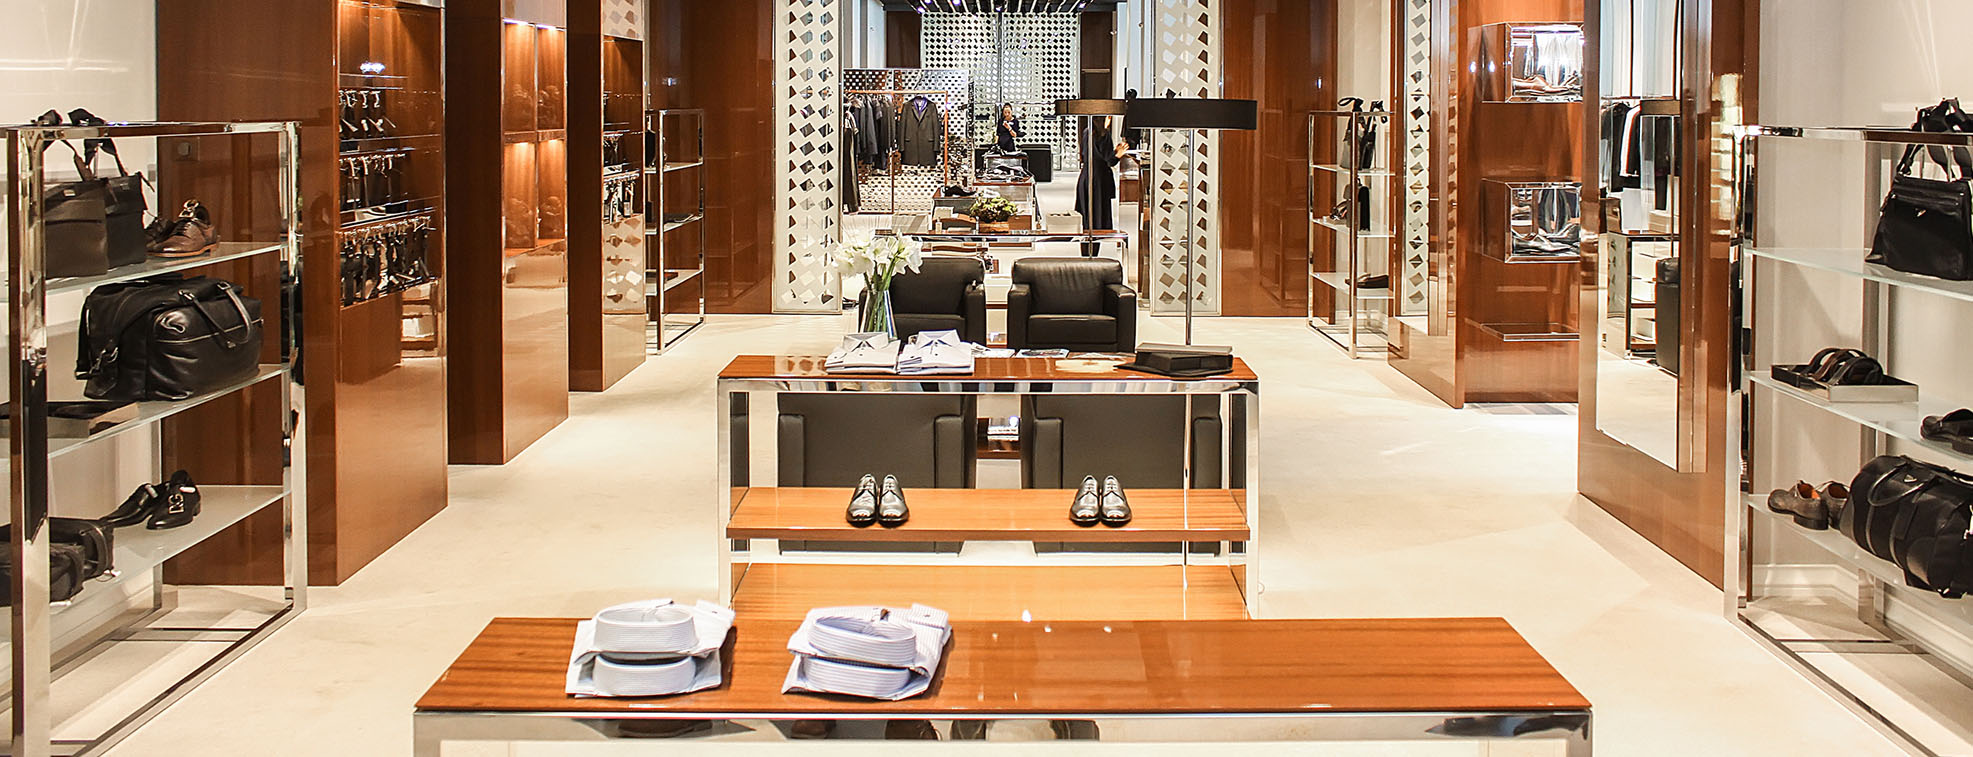 Clean and simple layout design of a designer store